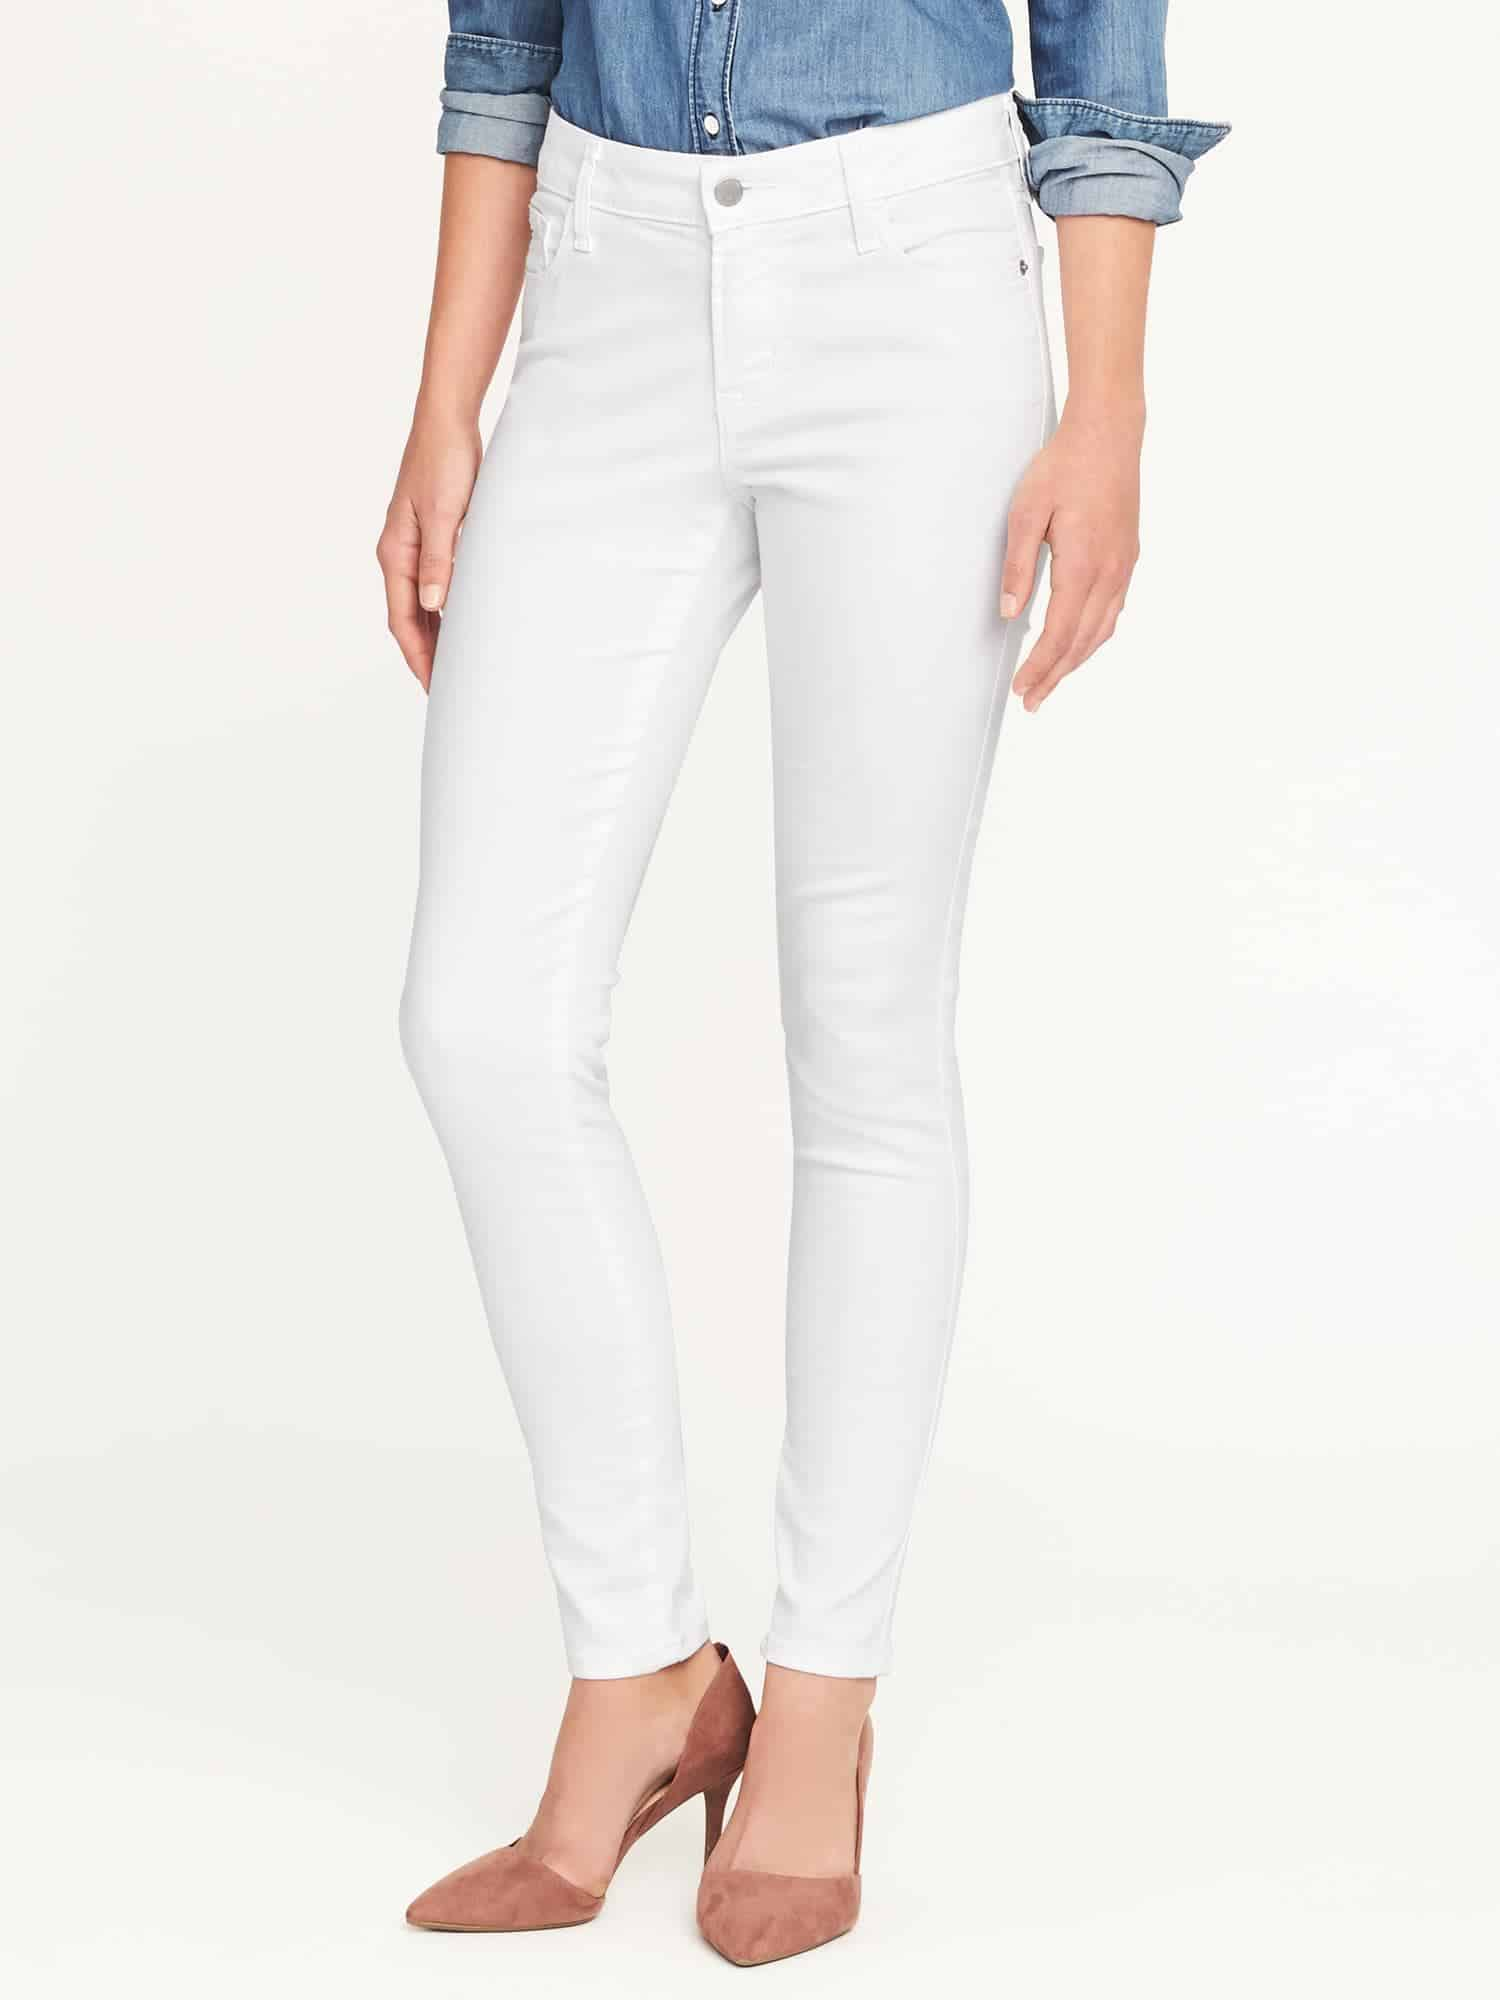 white skinny jeans - OLD NAVY MID-RISE CLEAN SLATE SKINNY JEANS